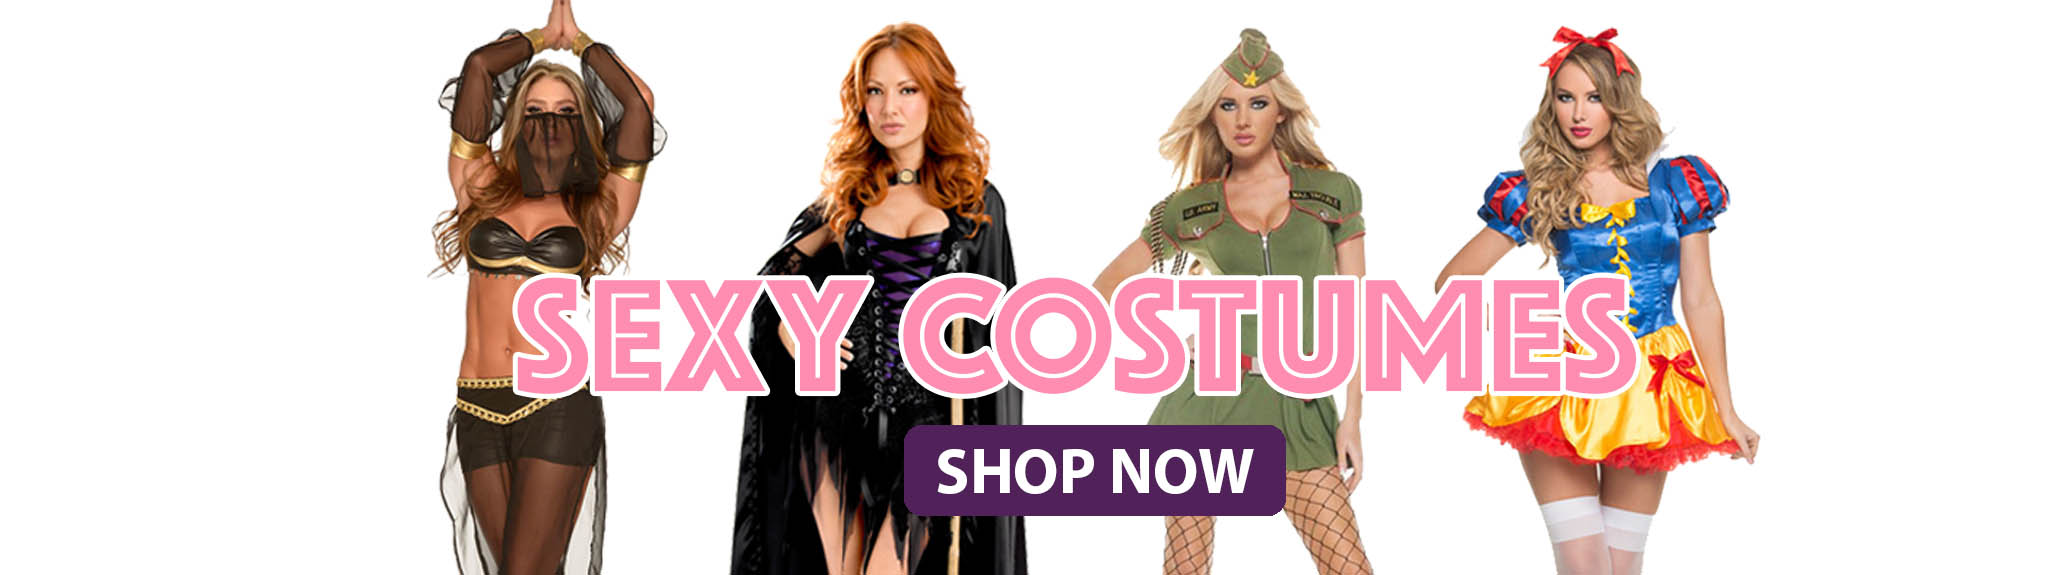 Shop for Costumes online at Luckydollstore.com Philippines!